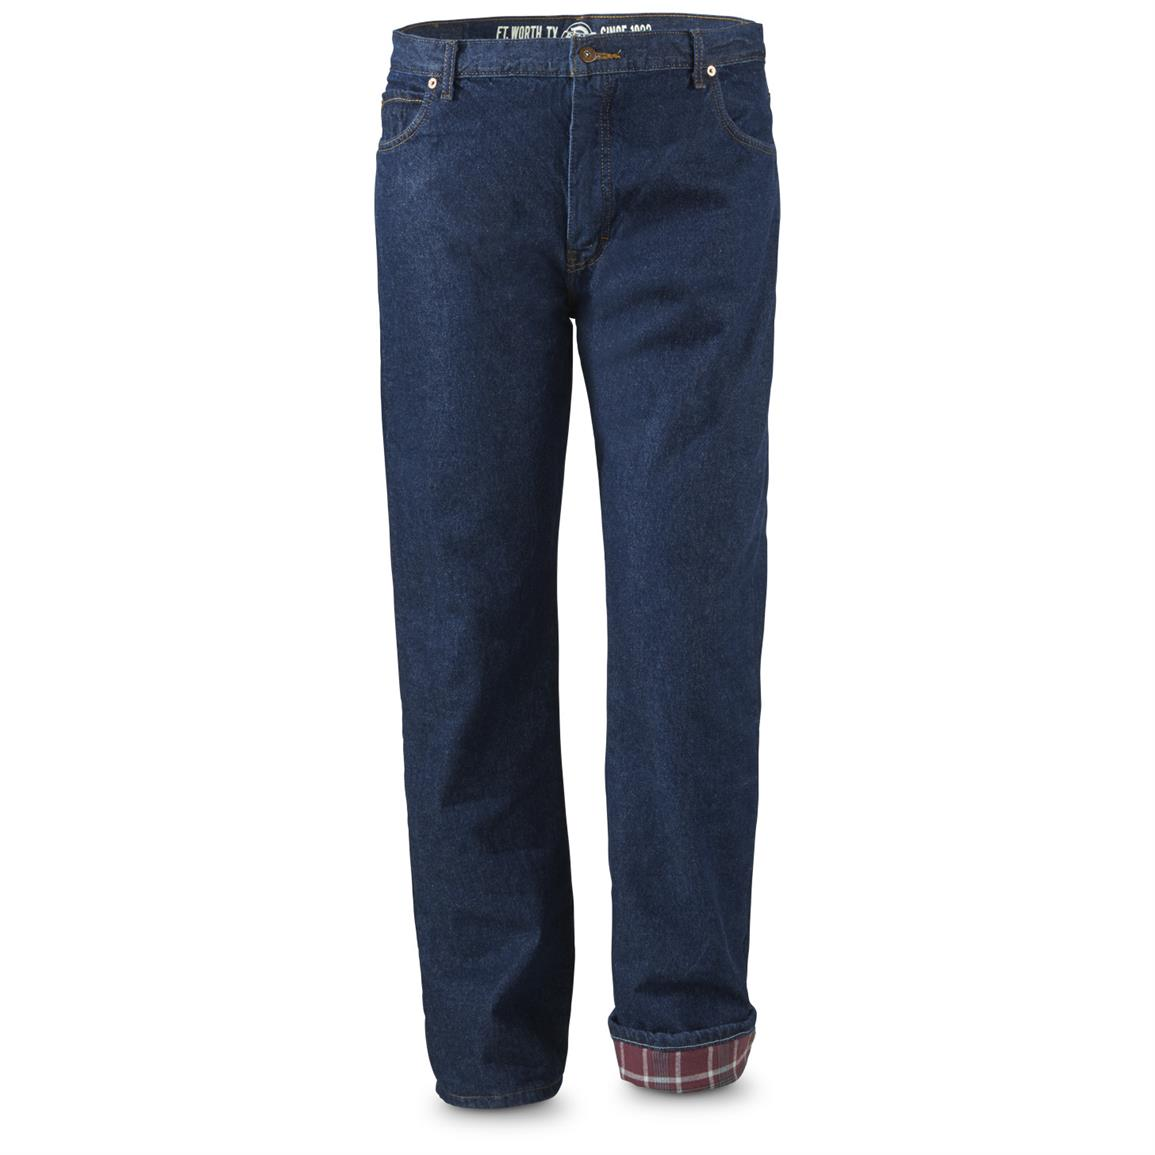 Dickies Men's Flannel Lined Relaxed Fit Jeans, Slight Irregulars, Rinsed Navy